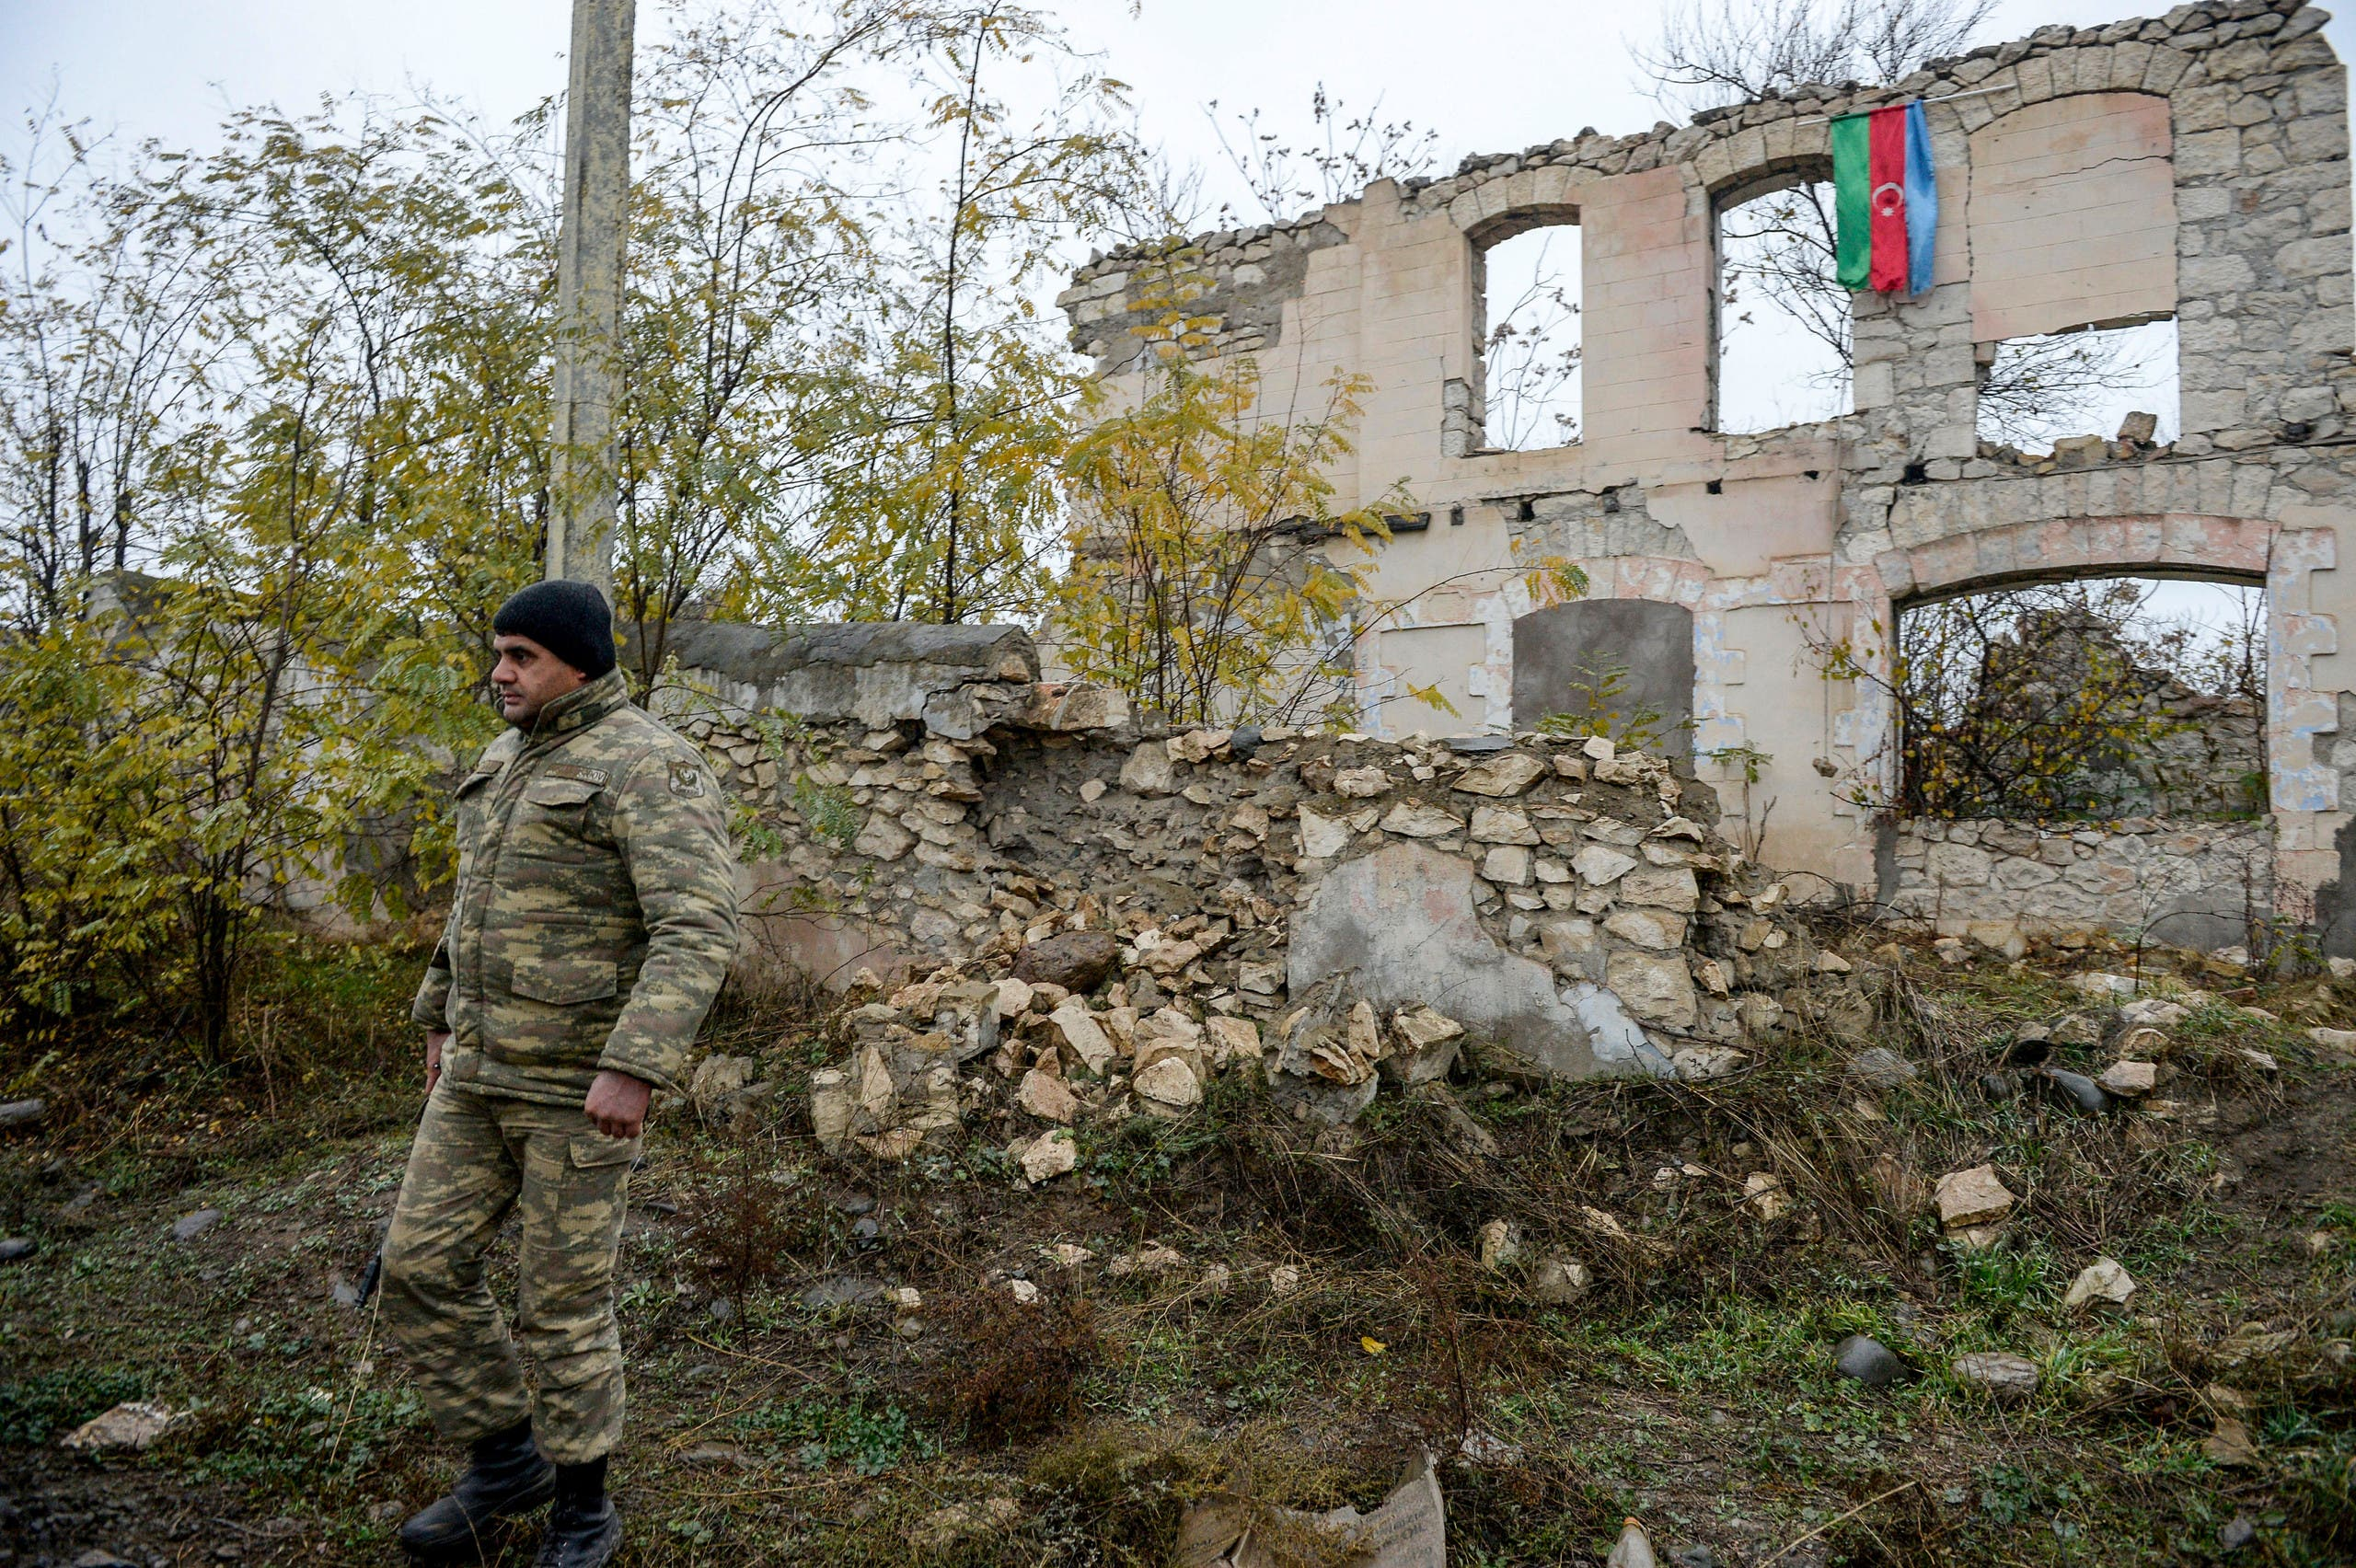 An Azerbaijani soldier walks near a destroyed house on the outskirts of the town of Fuzuli on November 18, 2020. (AFP)